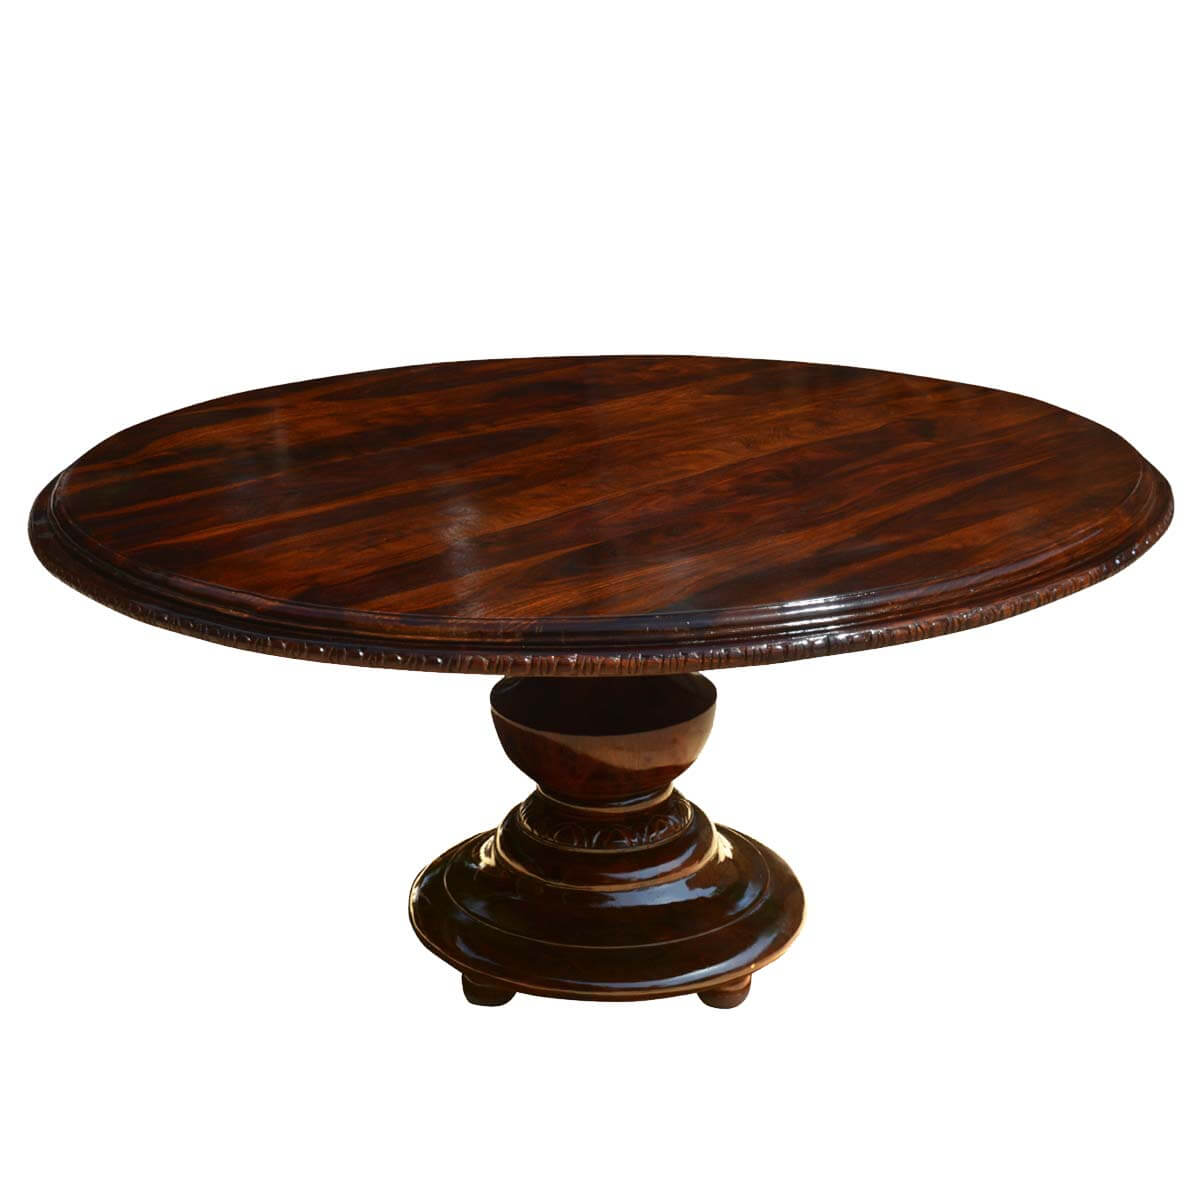 Rustic Solid Wood Pedestal Round Dining Table